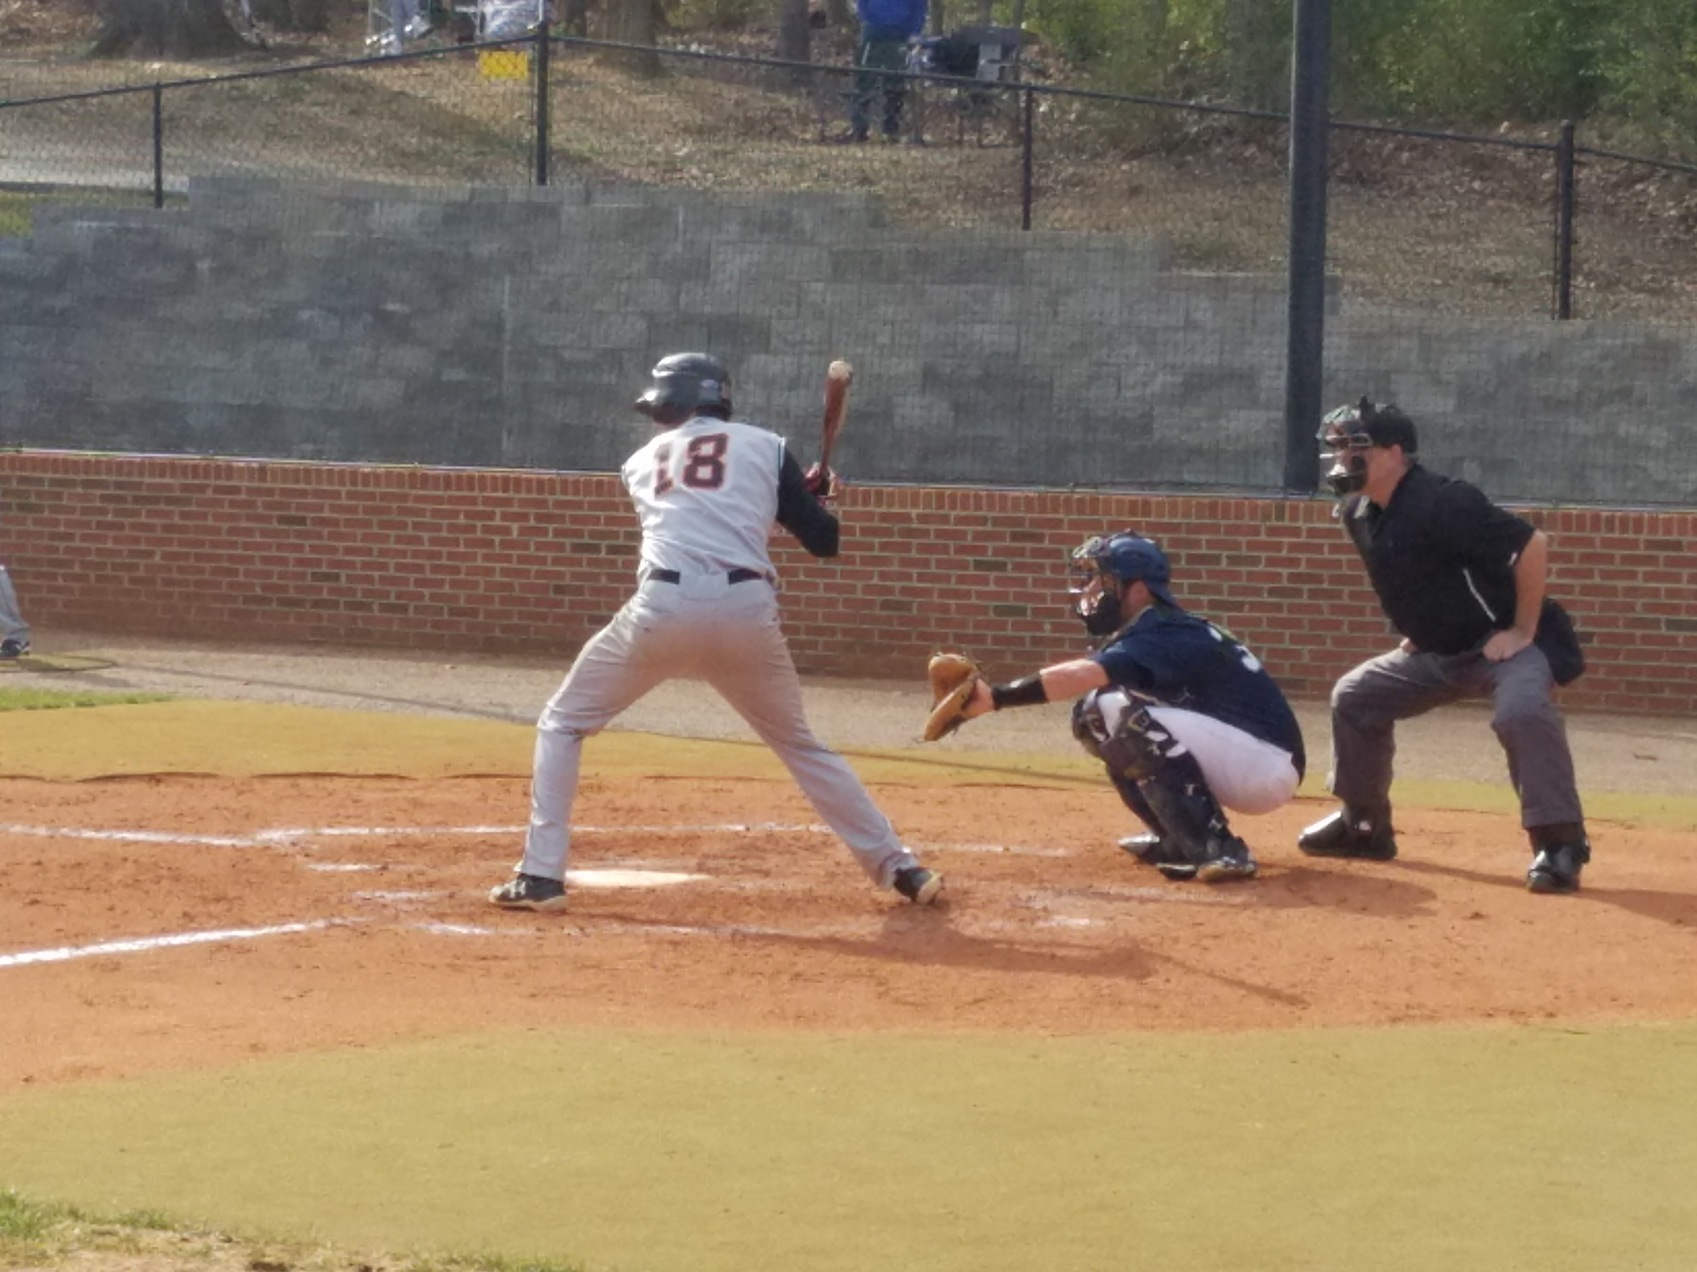 CLEVELAND STATE SWEEPS TUSCULUM JV IN DOUBLEHEADER